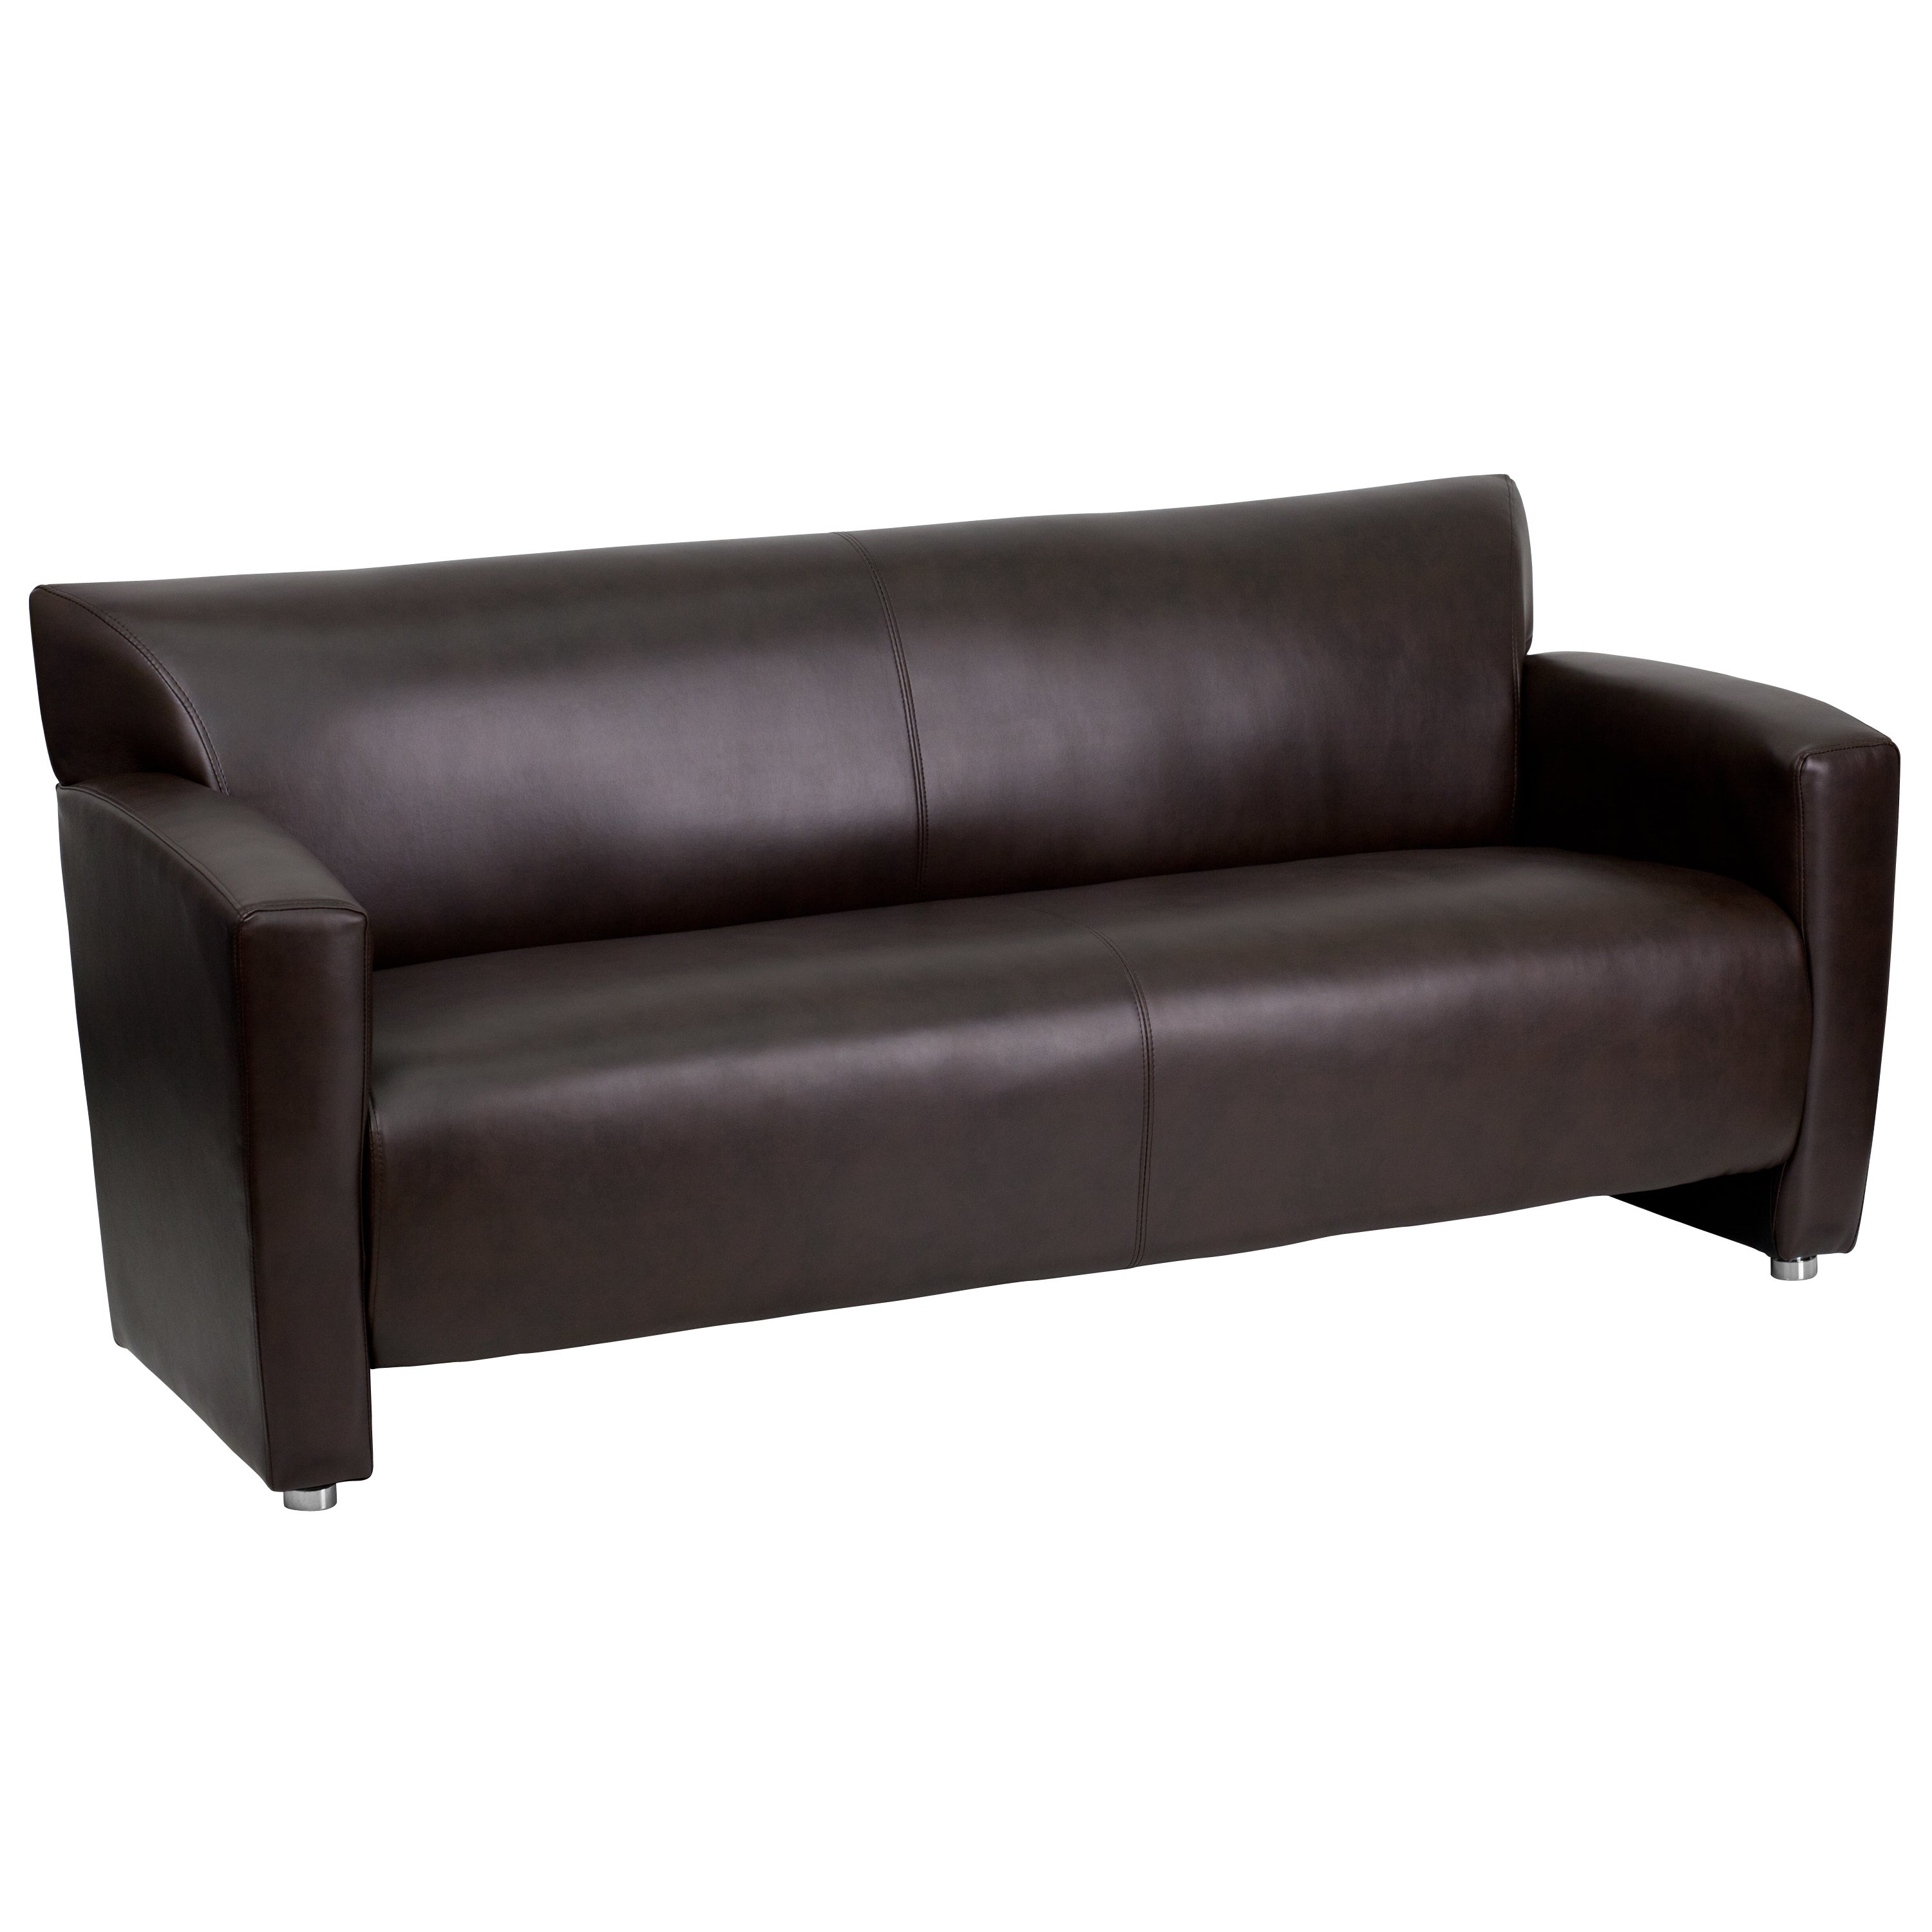 Hercules Majesty Series Leather Sofa Free Shipping Today